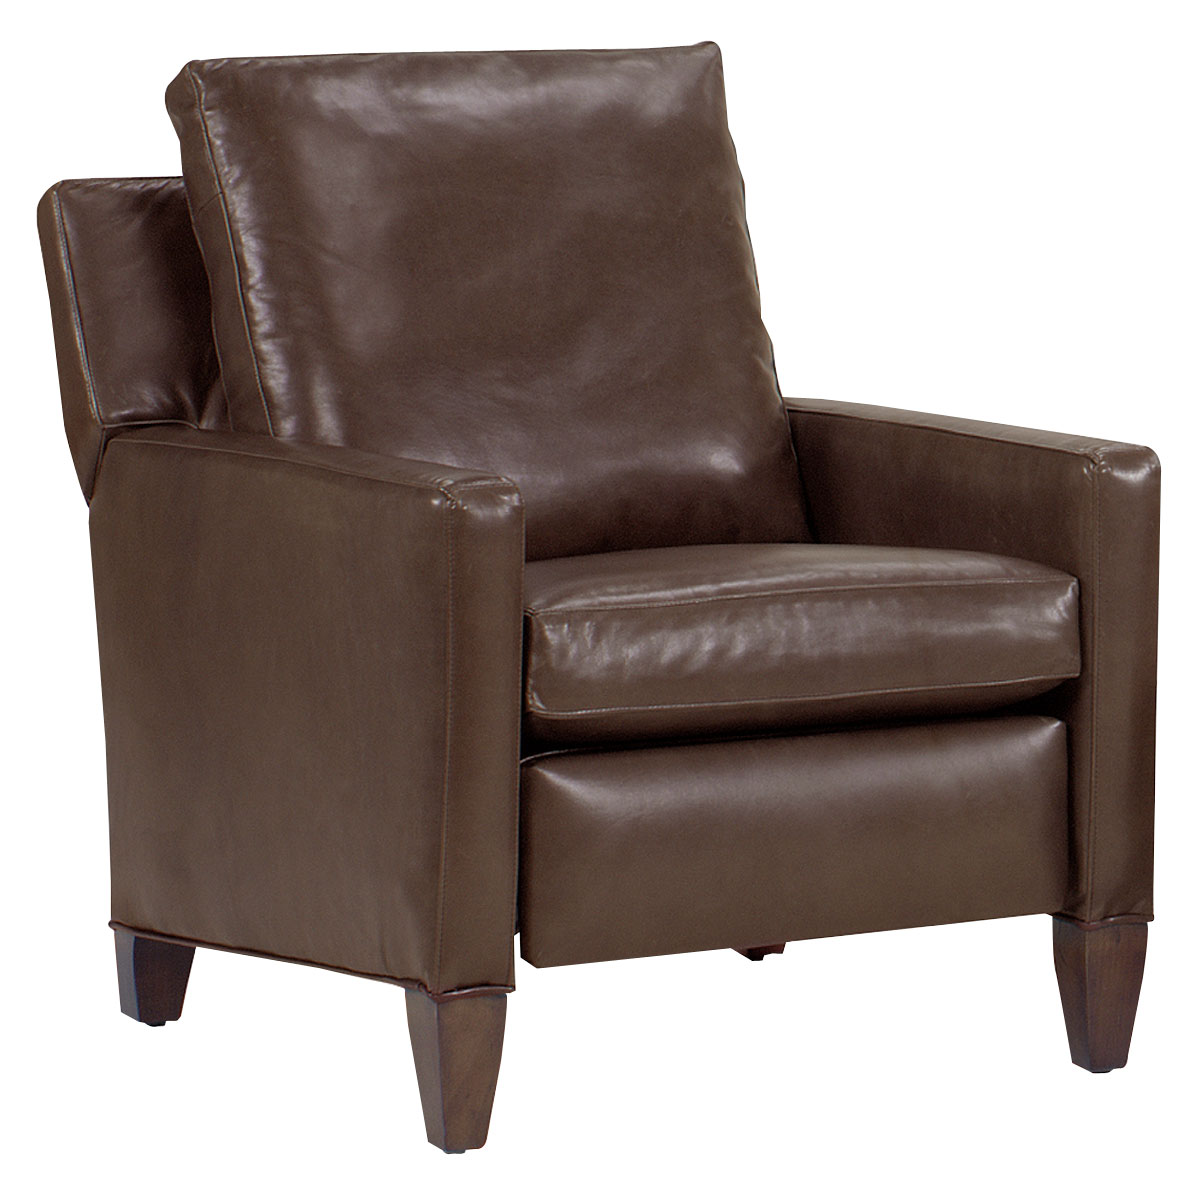 Alvin designer style tall leg leather reclining chair for Chair design leather